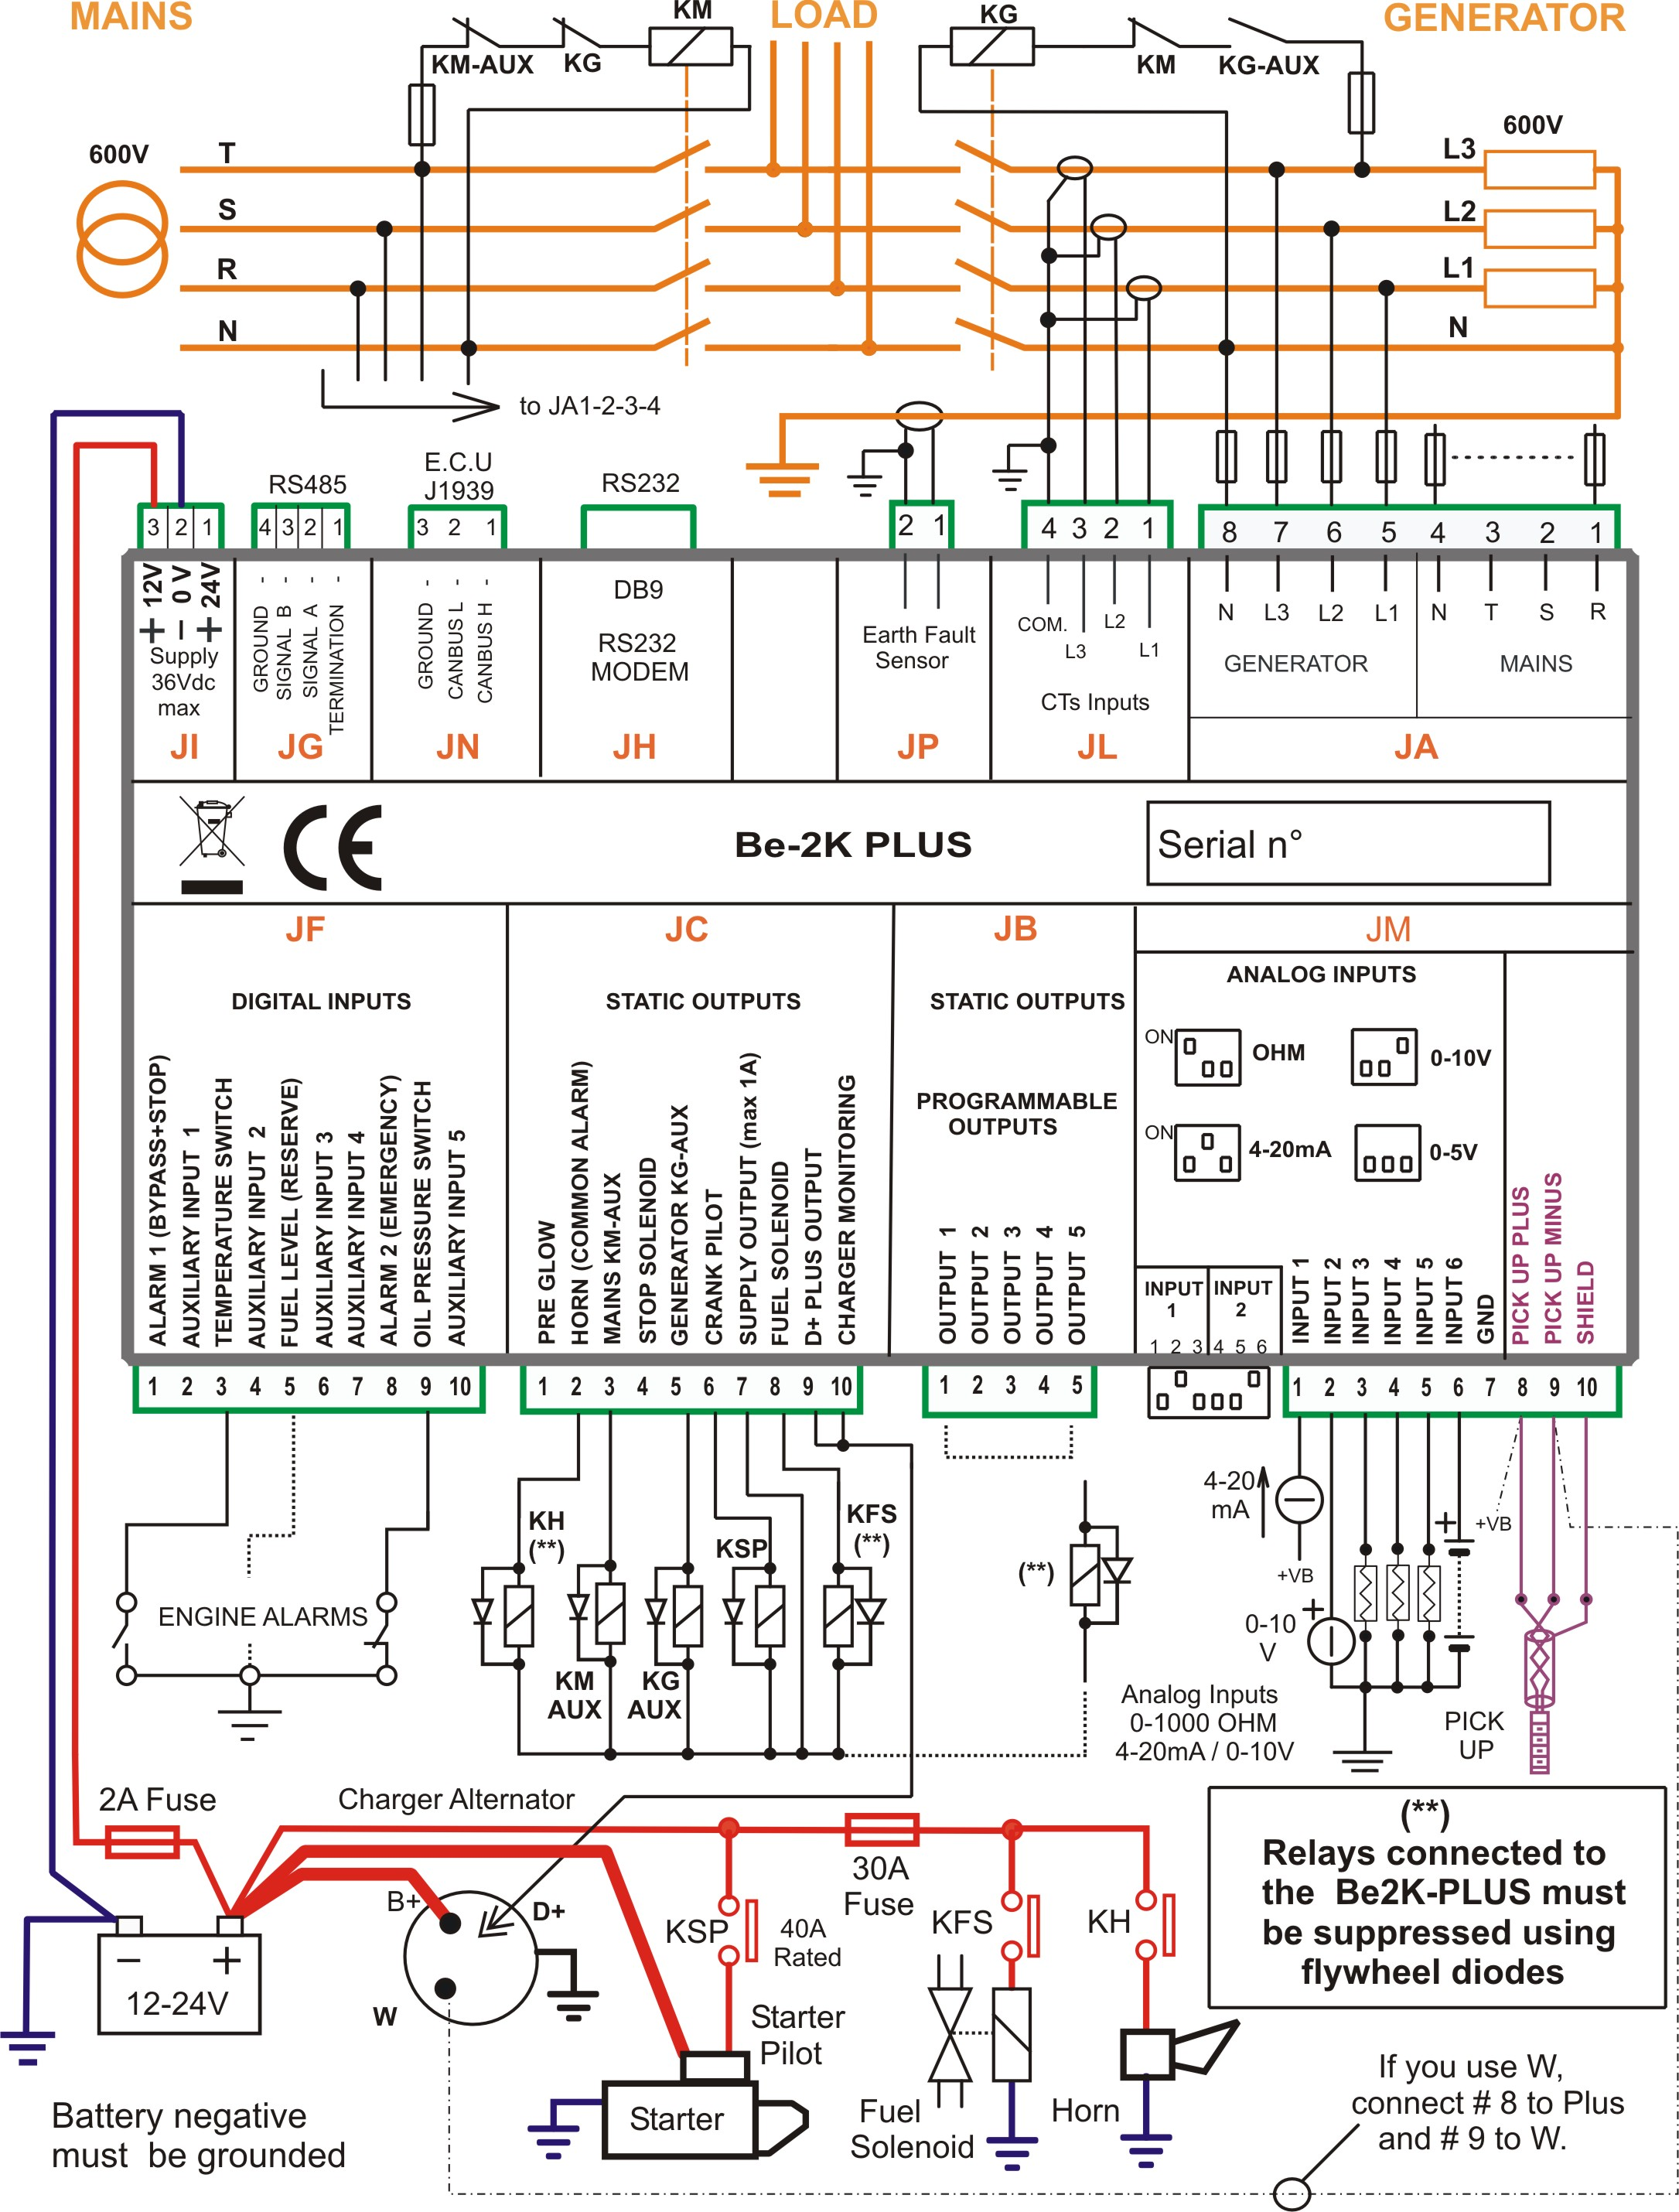 For A Standby Generator Wiring Diagram Enthusiast Diagrams 10kw Amf Control Panel Dg Set Genset Controller Backup